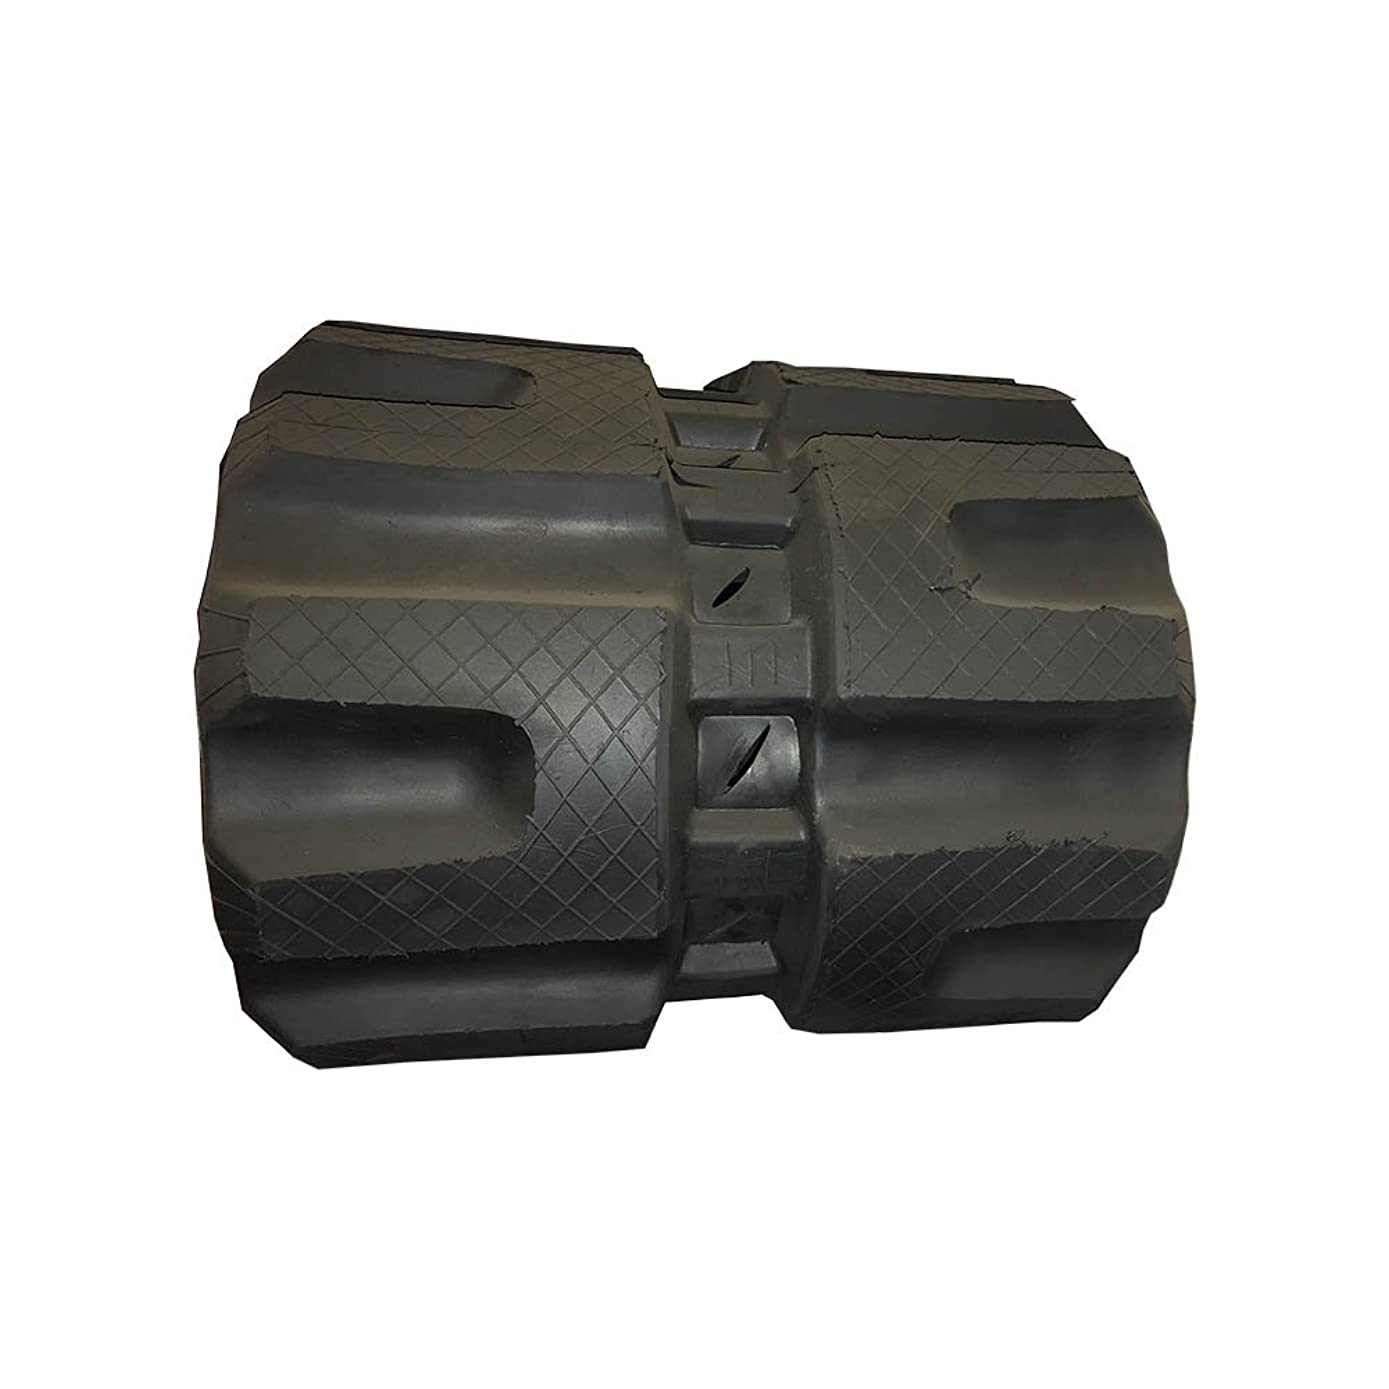 6678749 One Rubber Track Made to Fit Bobcat T250 T300 T300H T320 T750 T770 Case TR320 TR380 CV380 TV380 New Holland C185 C195 C190 C232